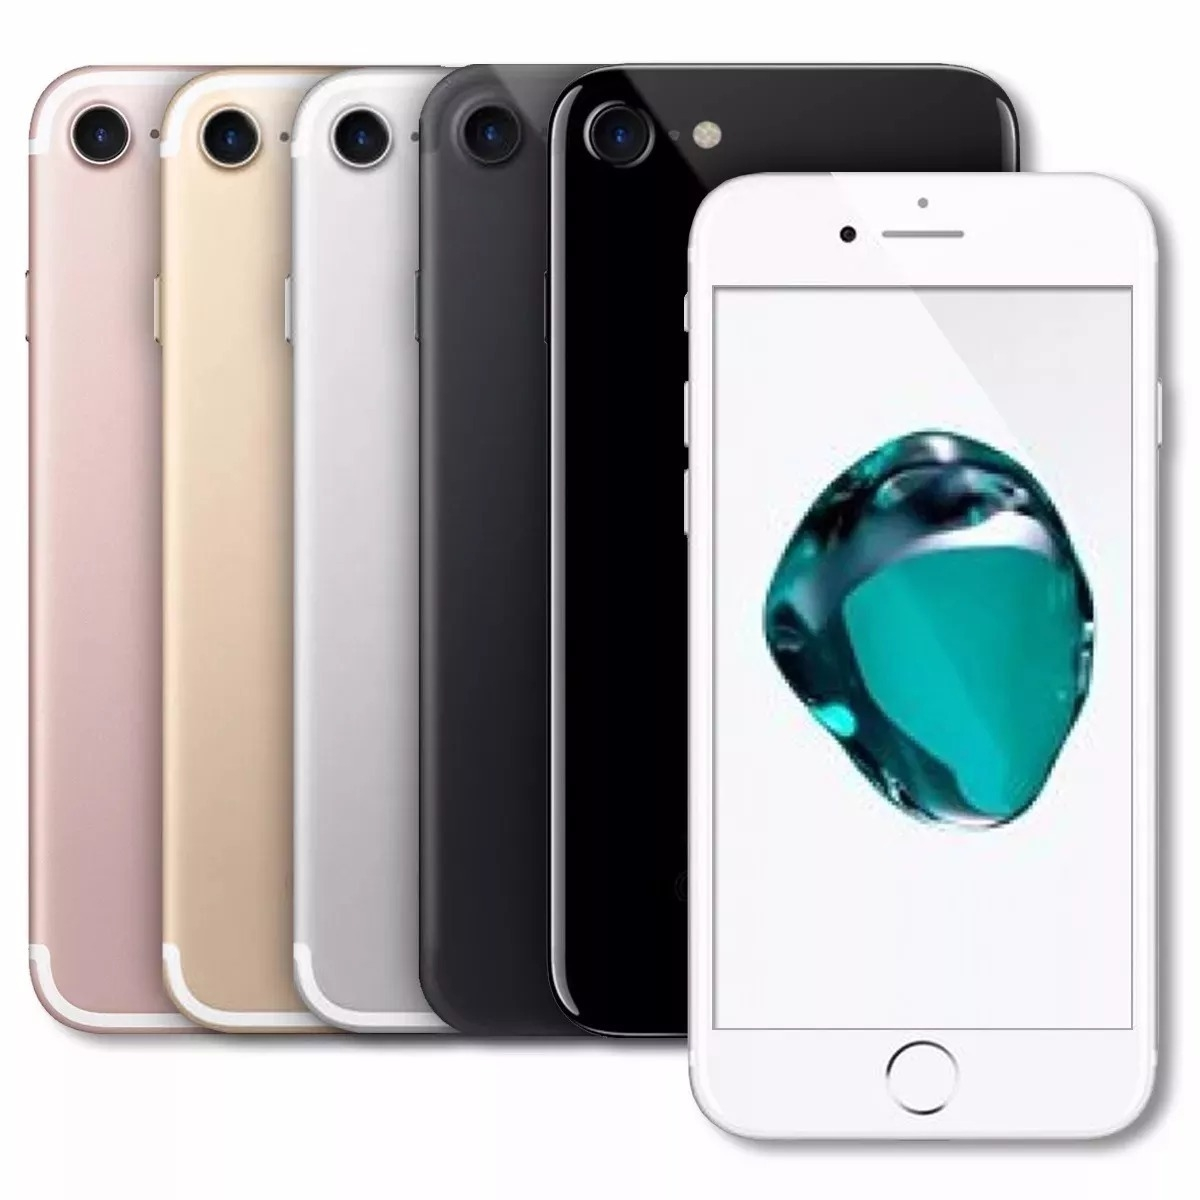 Led Computers Apple Iphone 7 32gb 4734 Ips 1334x750 32 Gb Rose Gold Smartphone 47